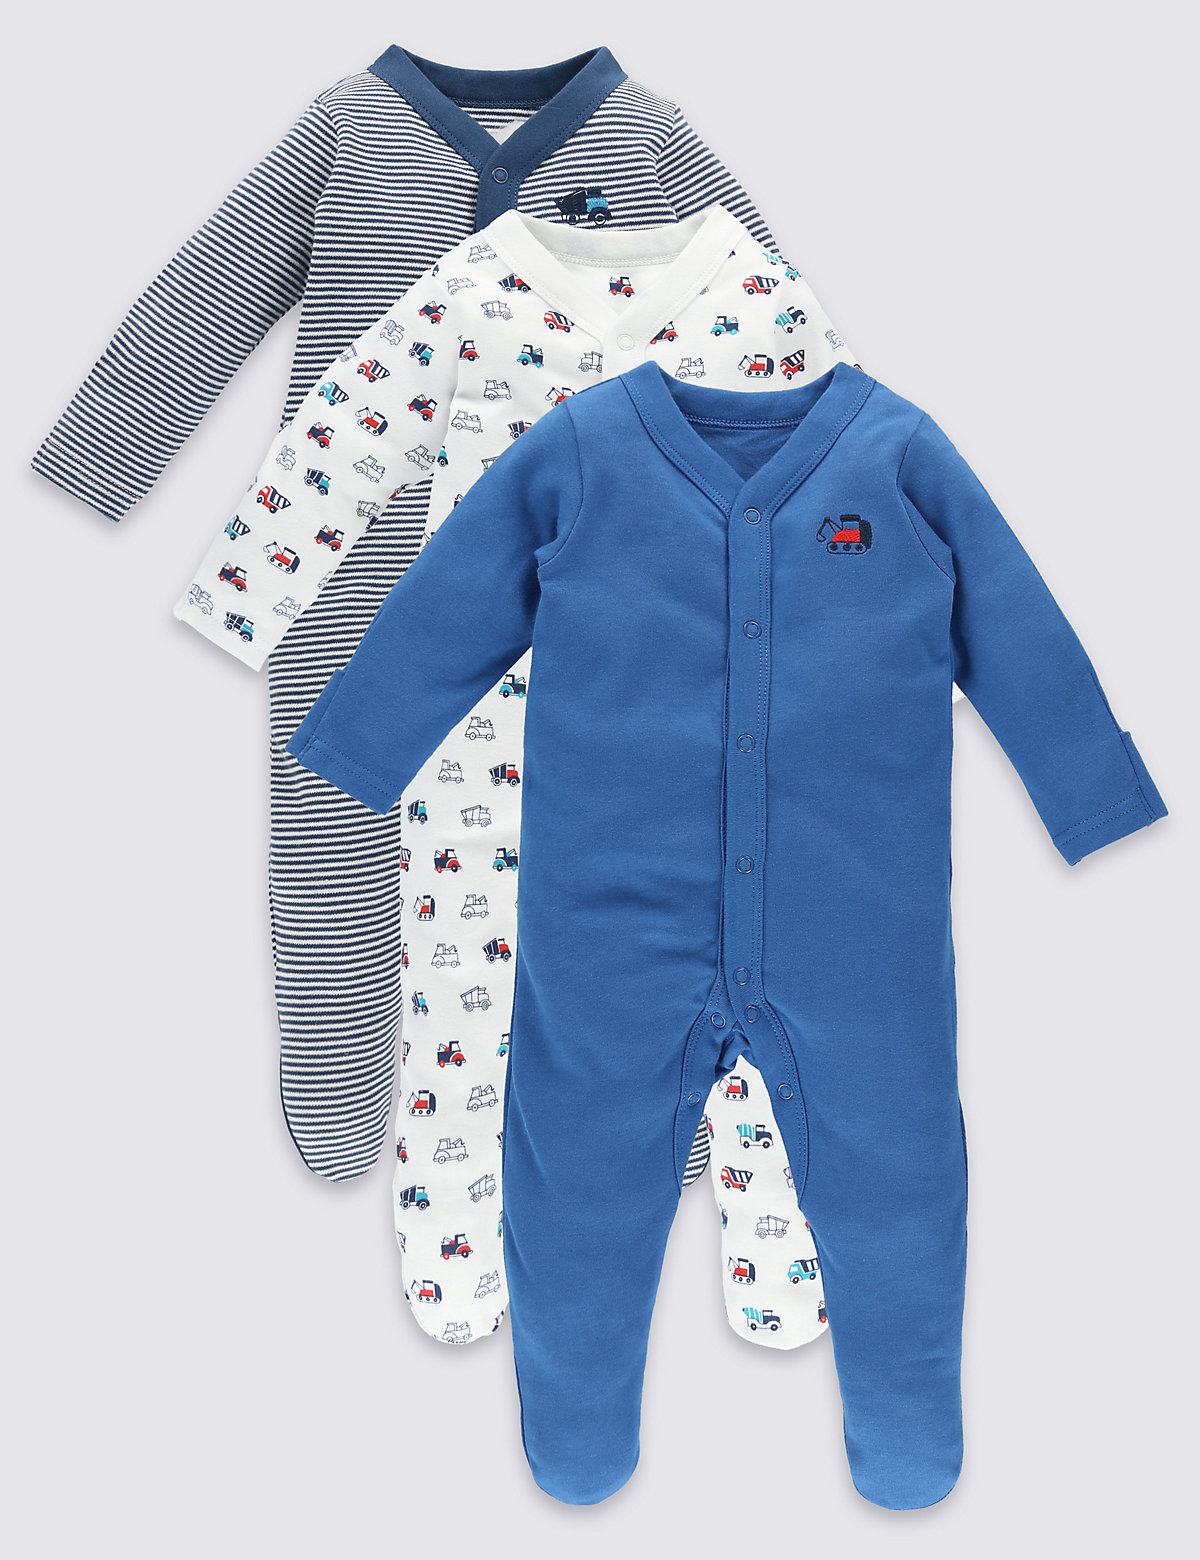 3 Pack Long Sleeve Pure Cotton Sleepsuits